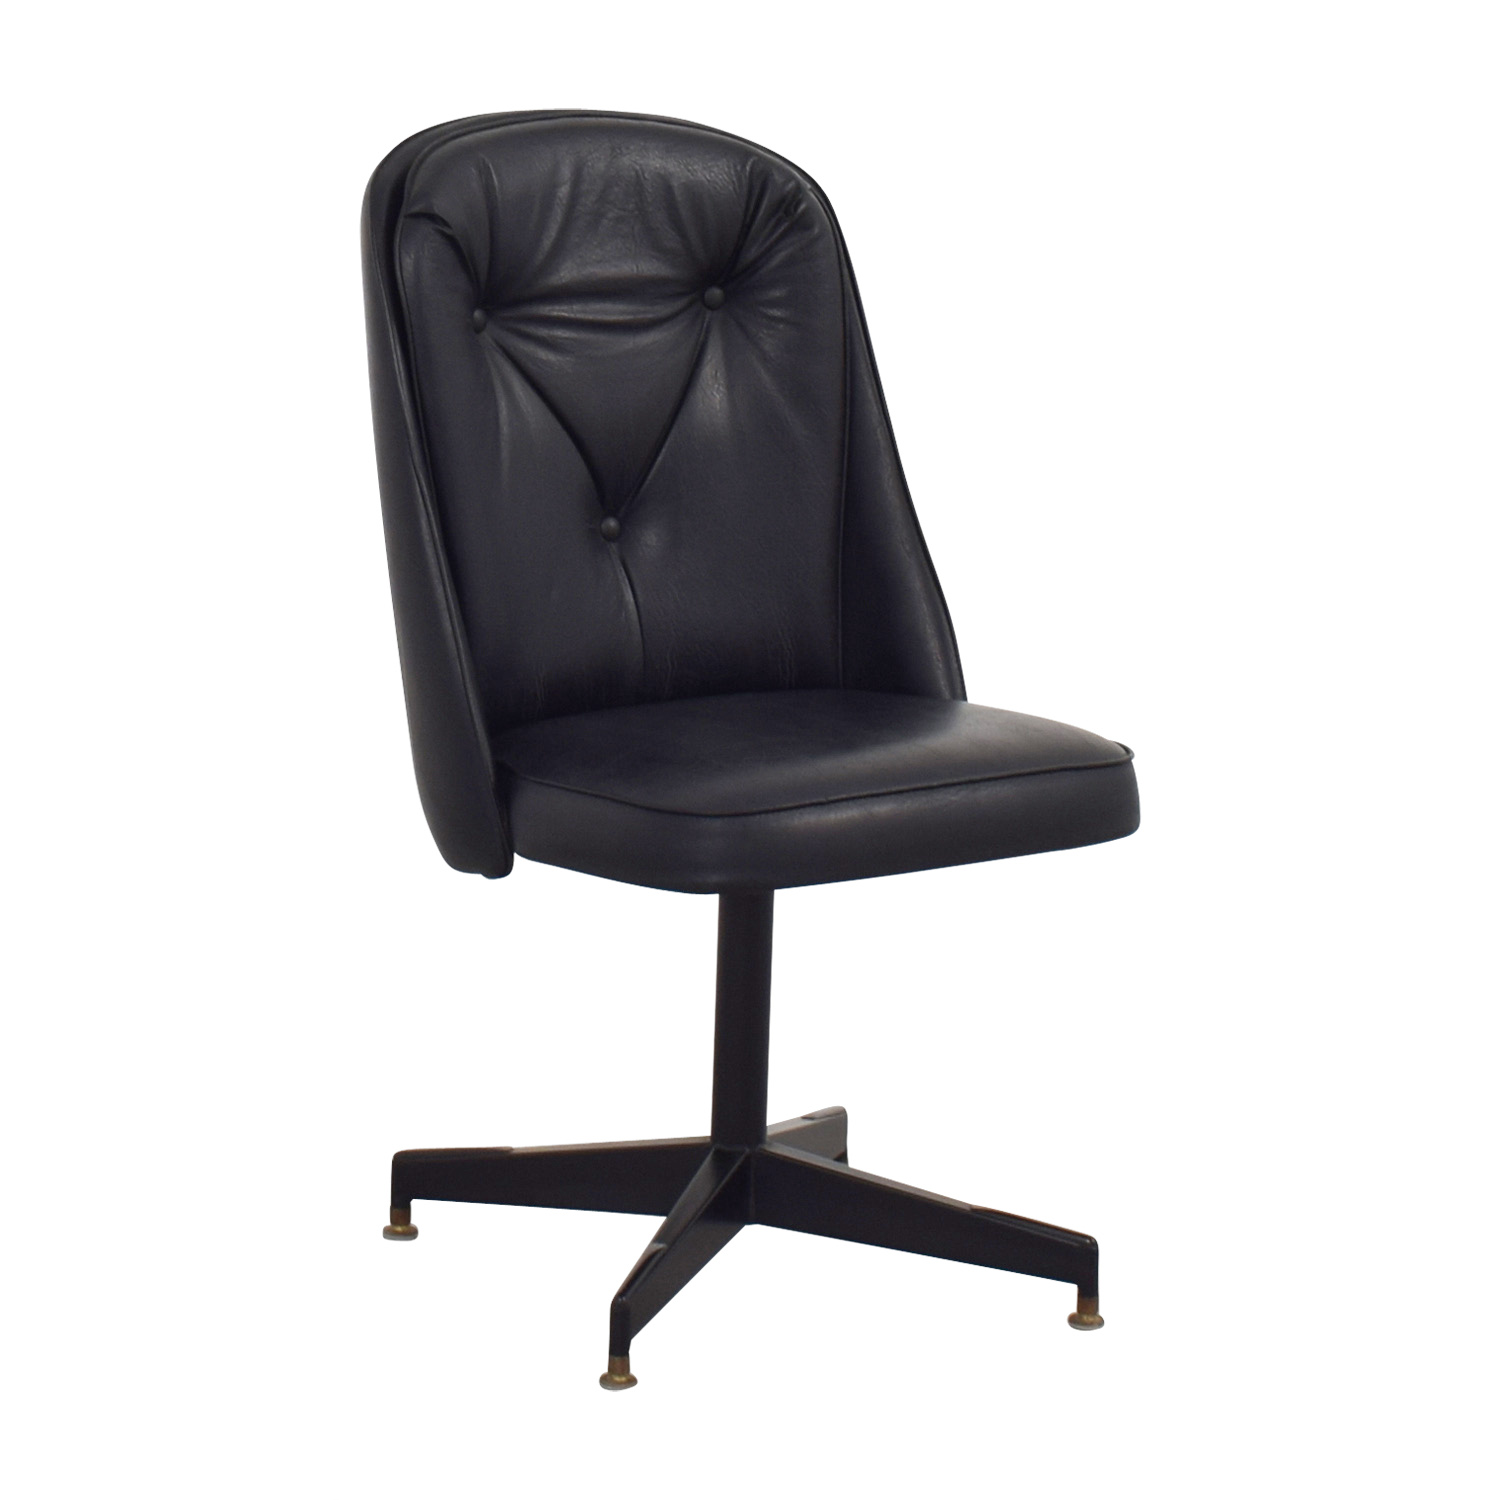 shop Black Leather Swivel Office Desk Chair